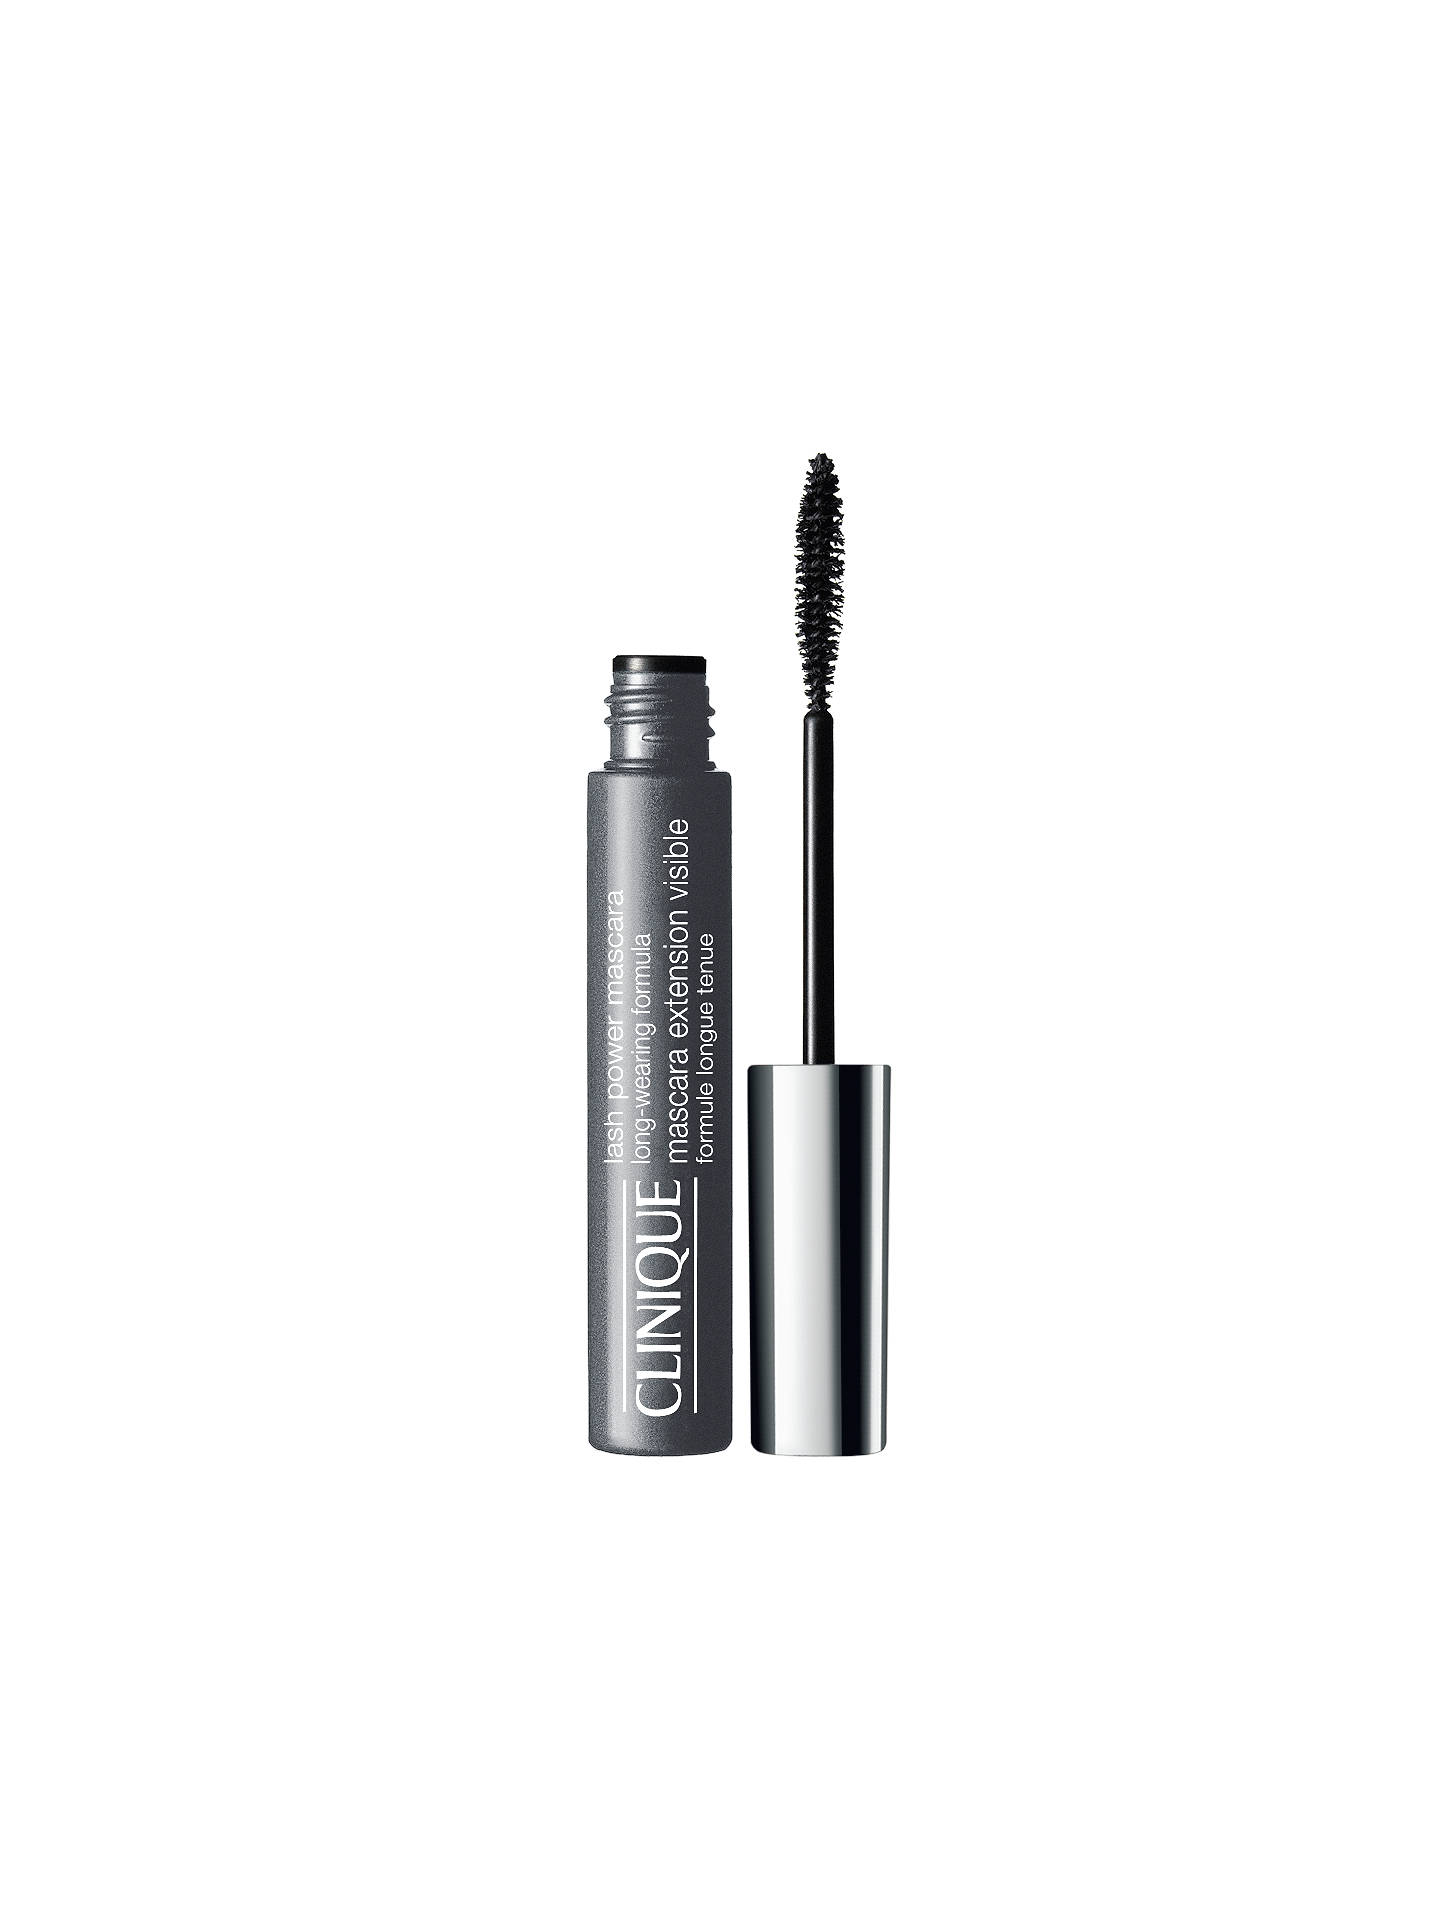 8a6bcc48198 Buy Clinique Lash Power Mascara Long-Wearing Formula, Black Onyx Online at  johnlewis.